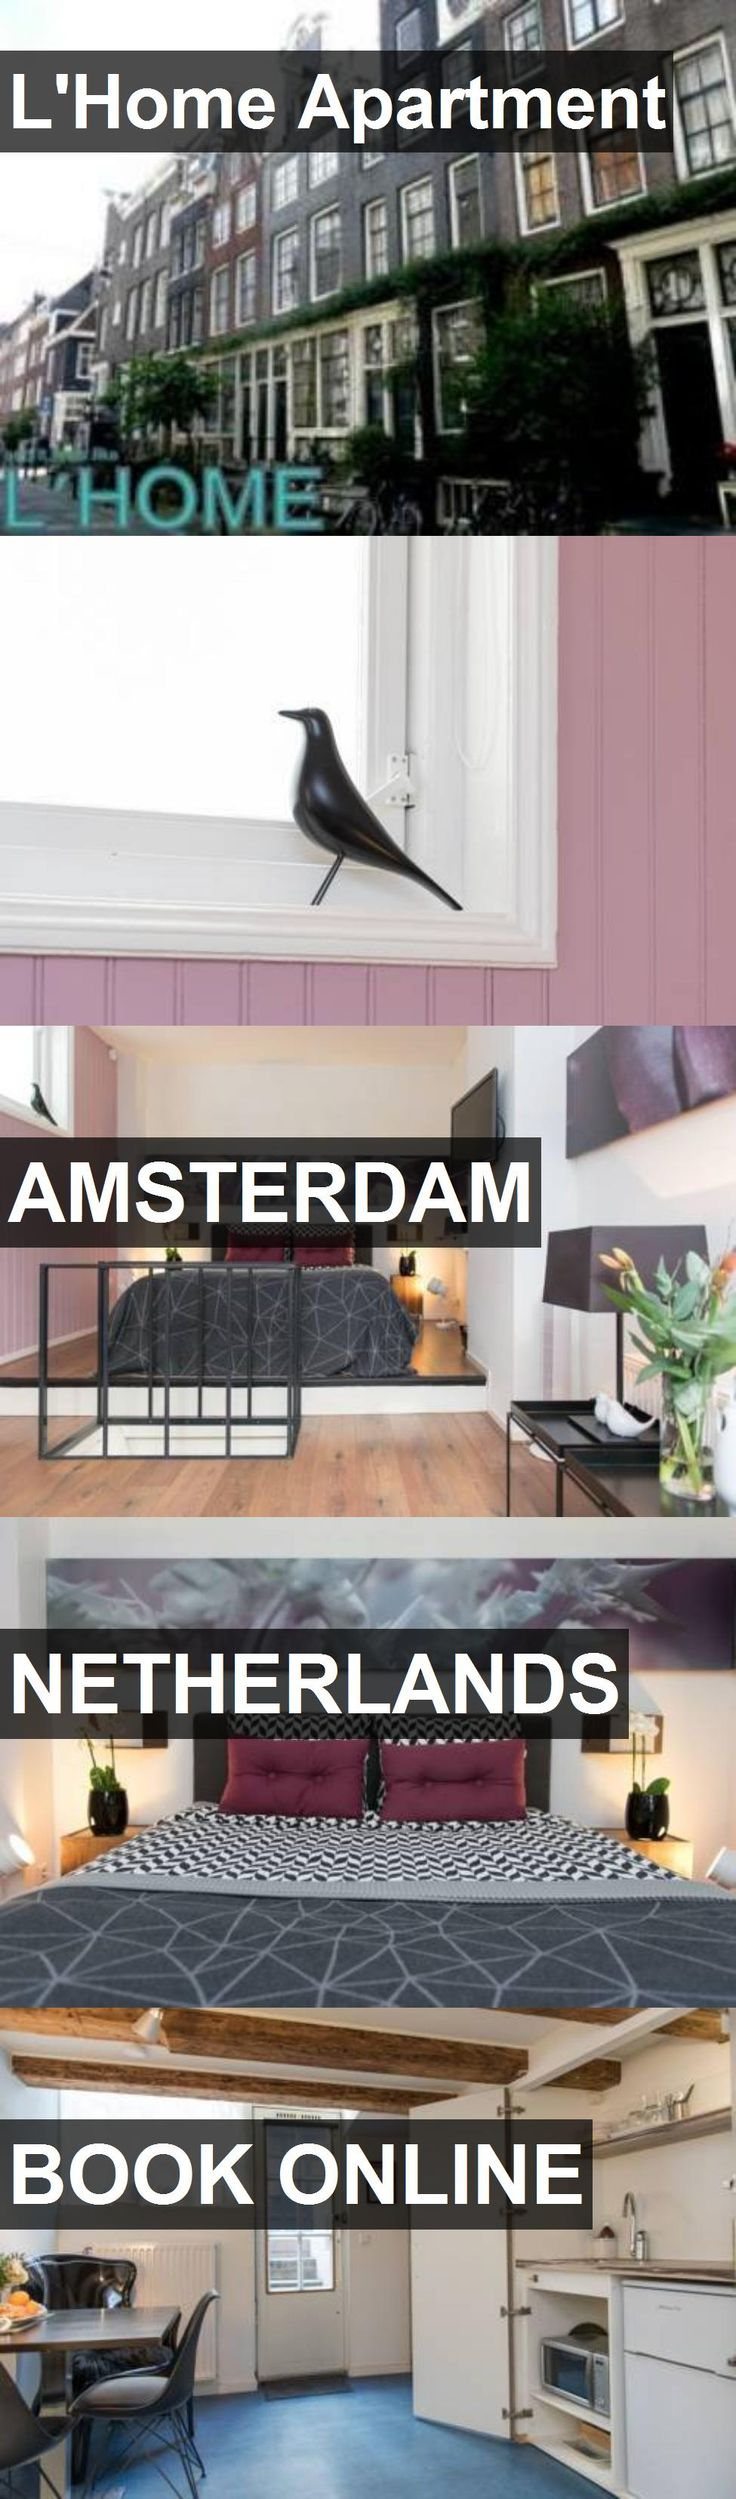 L'Home Apartment in Amsterdam, Netherlands. For more information, photos, reviews and best prices please follow the link. #Netherlands #Amsterdam #travel #vacation #apartment